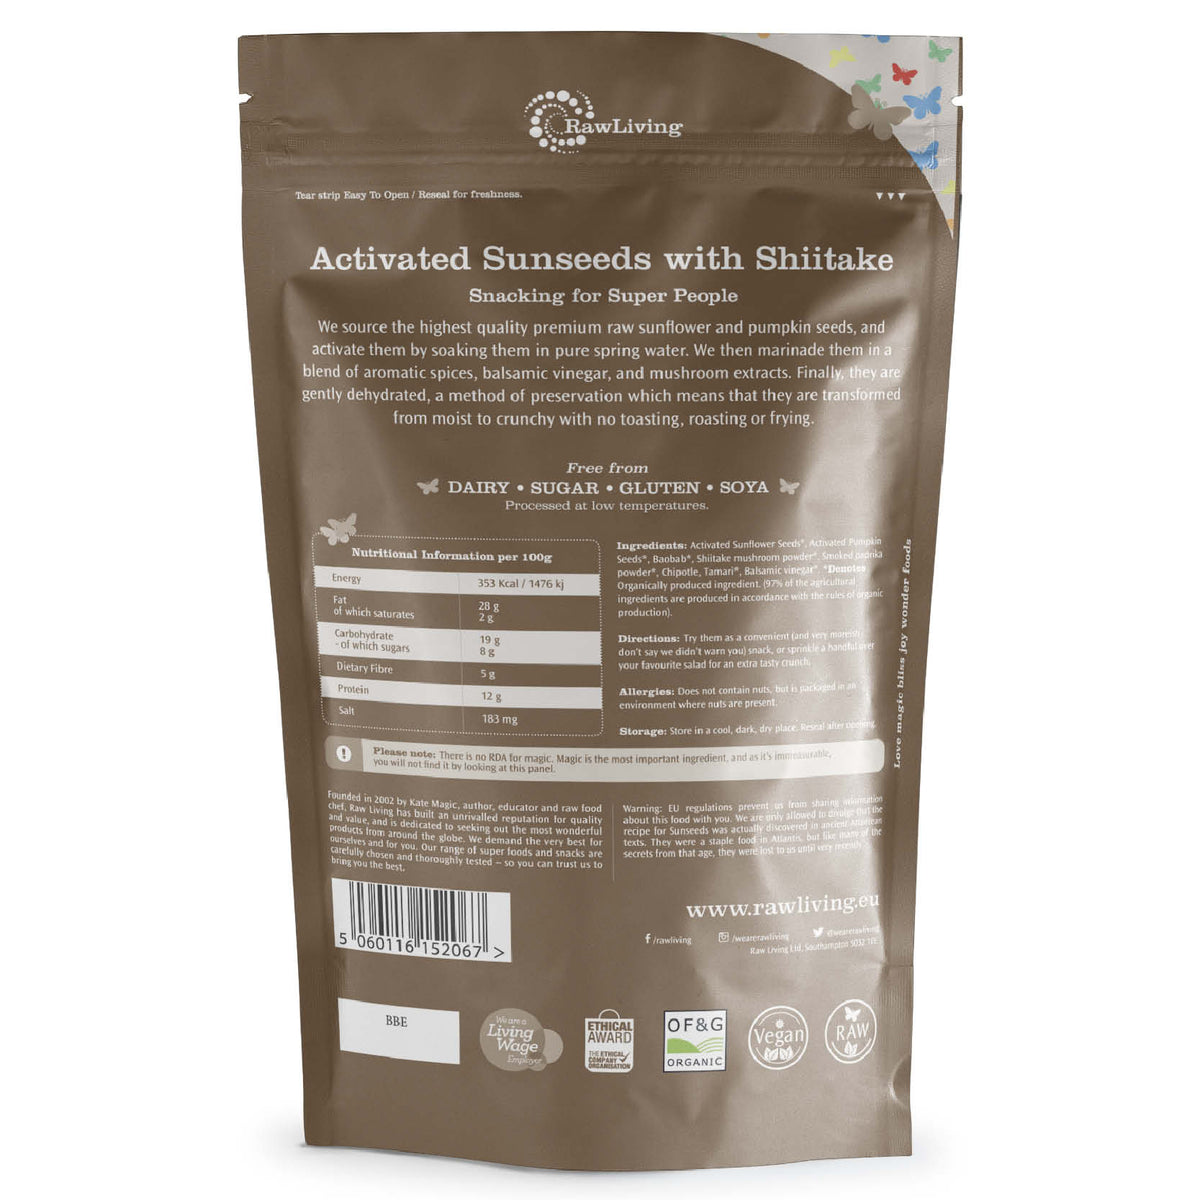 Activated Sunseeds with Shiitake (100g, 250g, 500g)